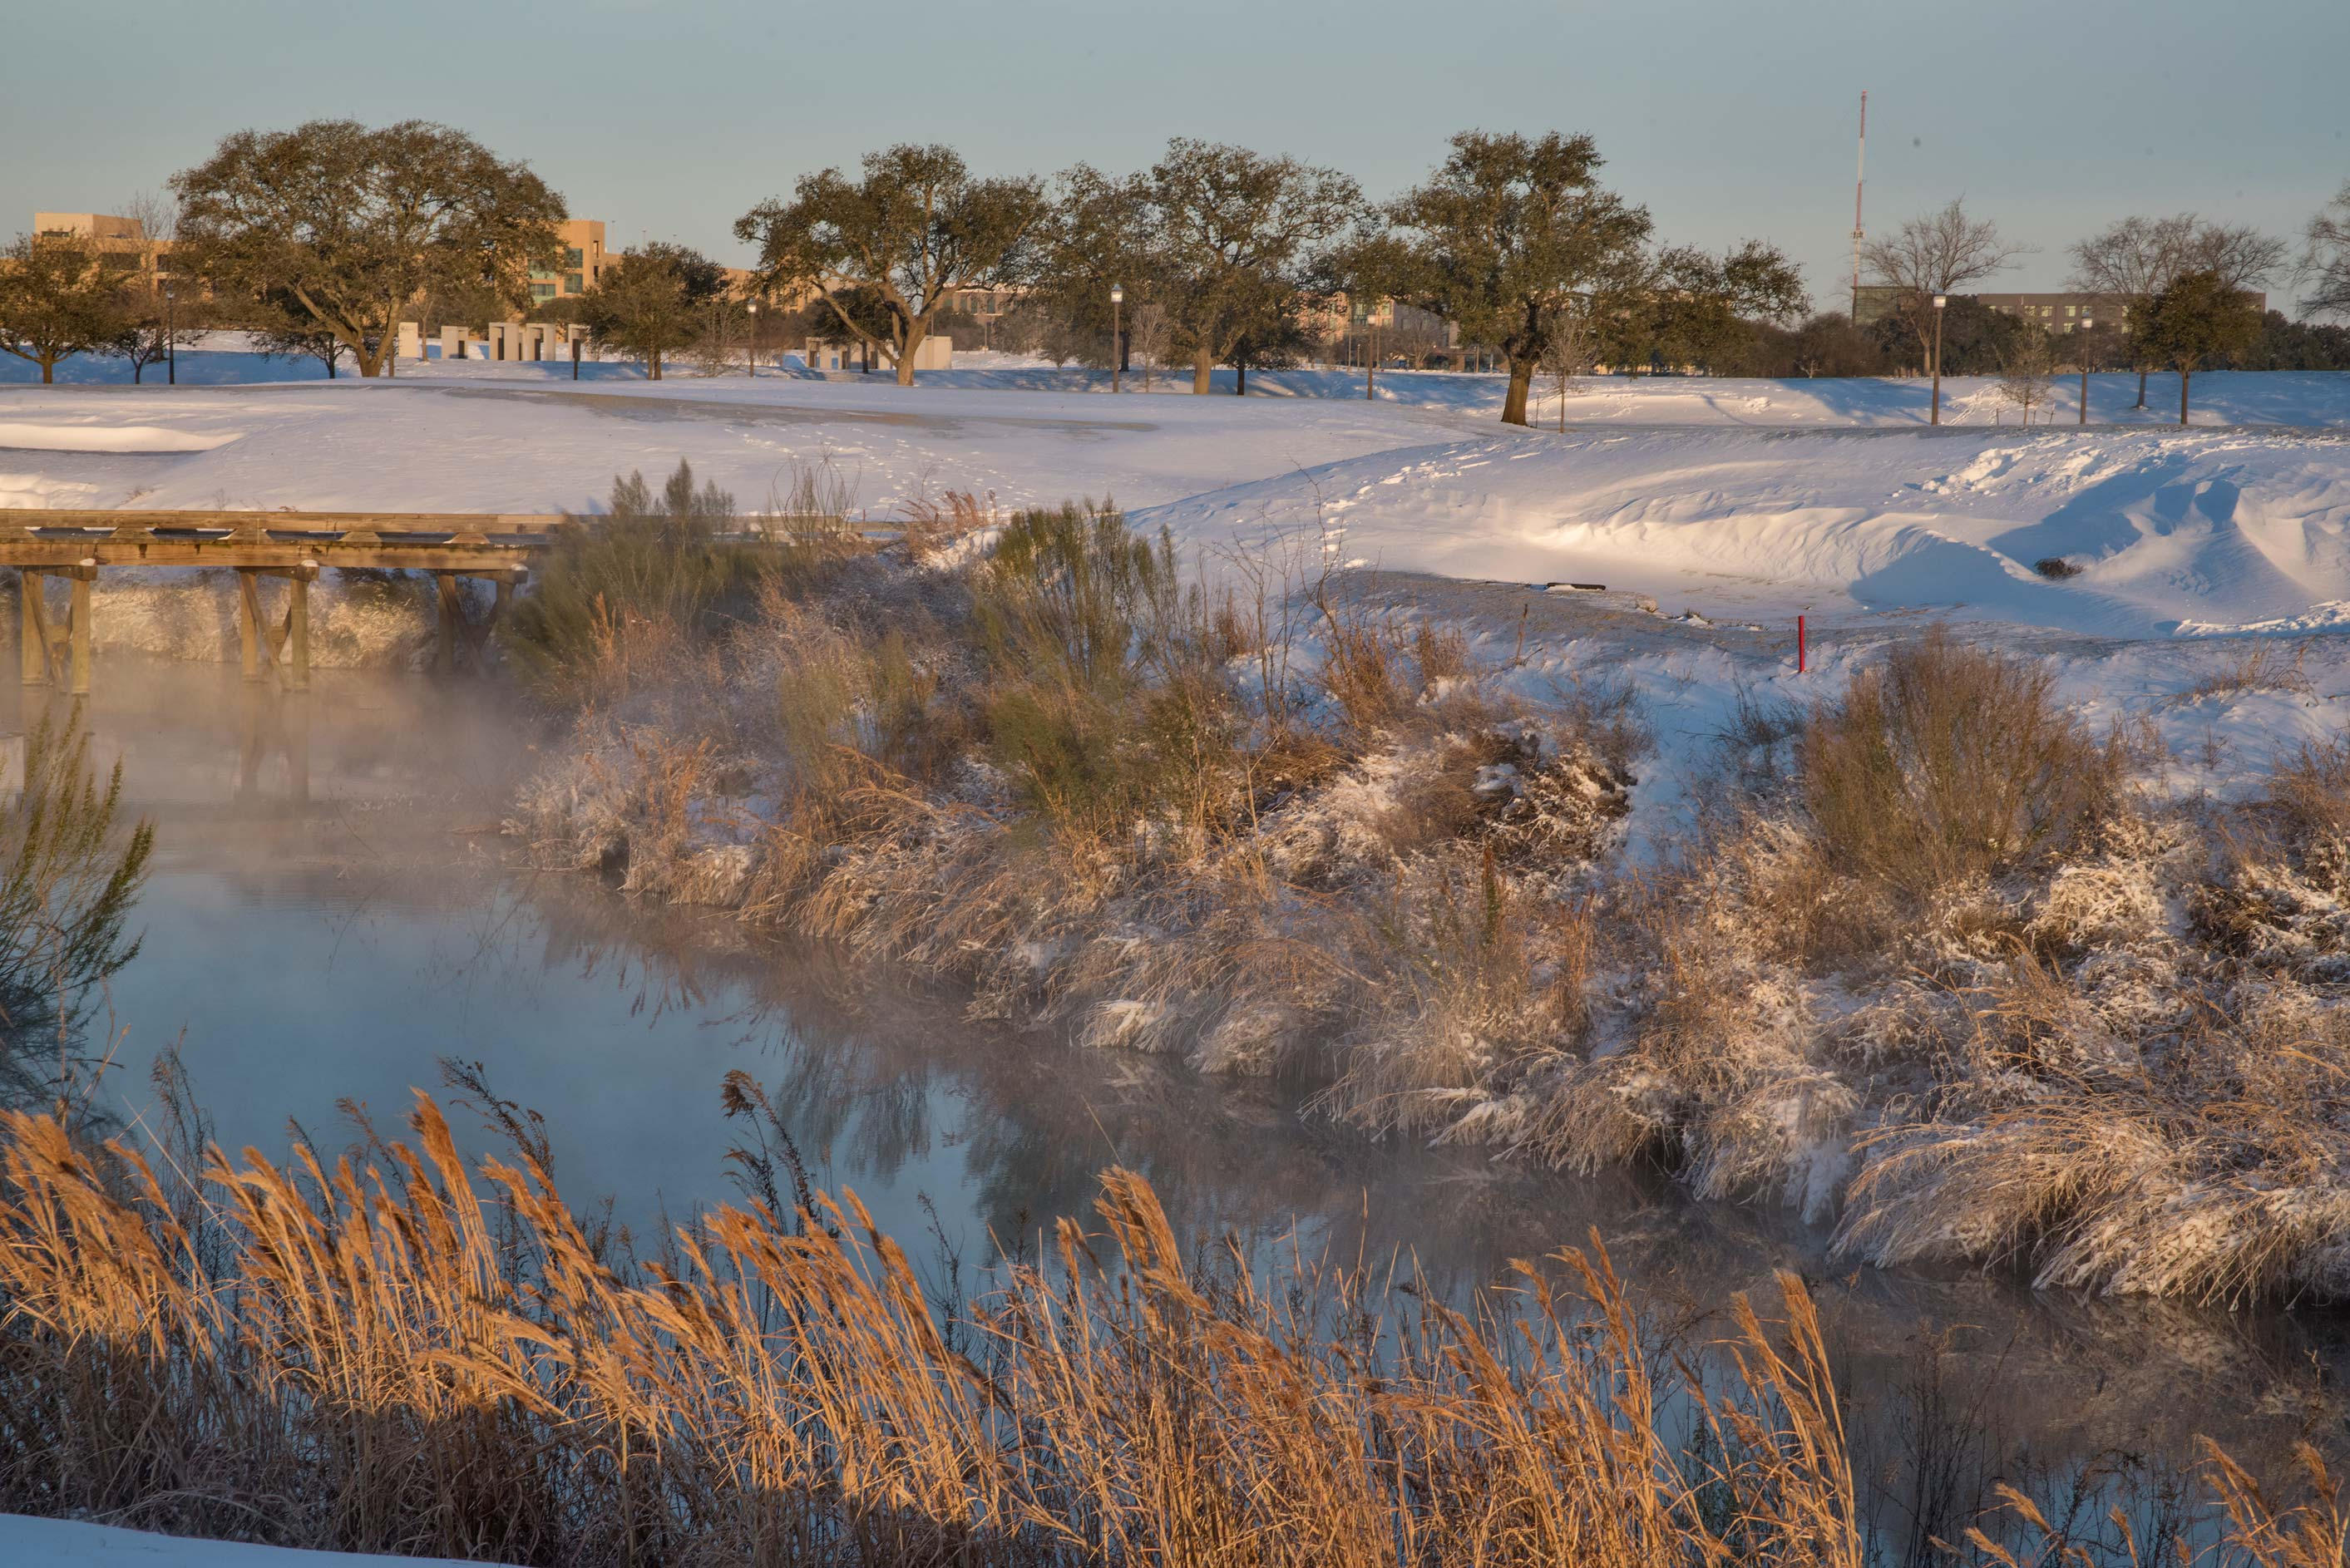 Creek at sunrise on a golf course on campus of...M University. College Station, Texas